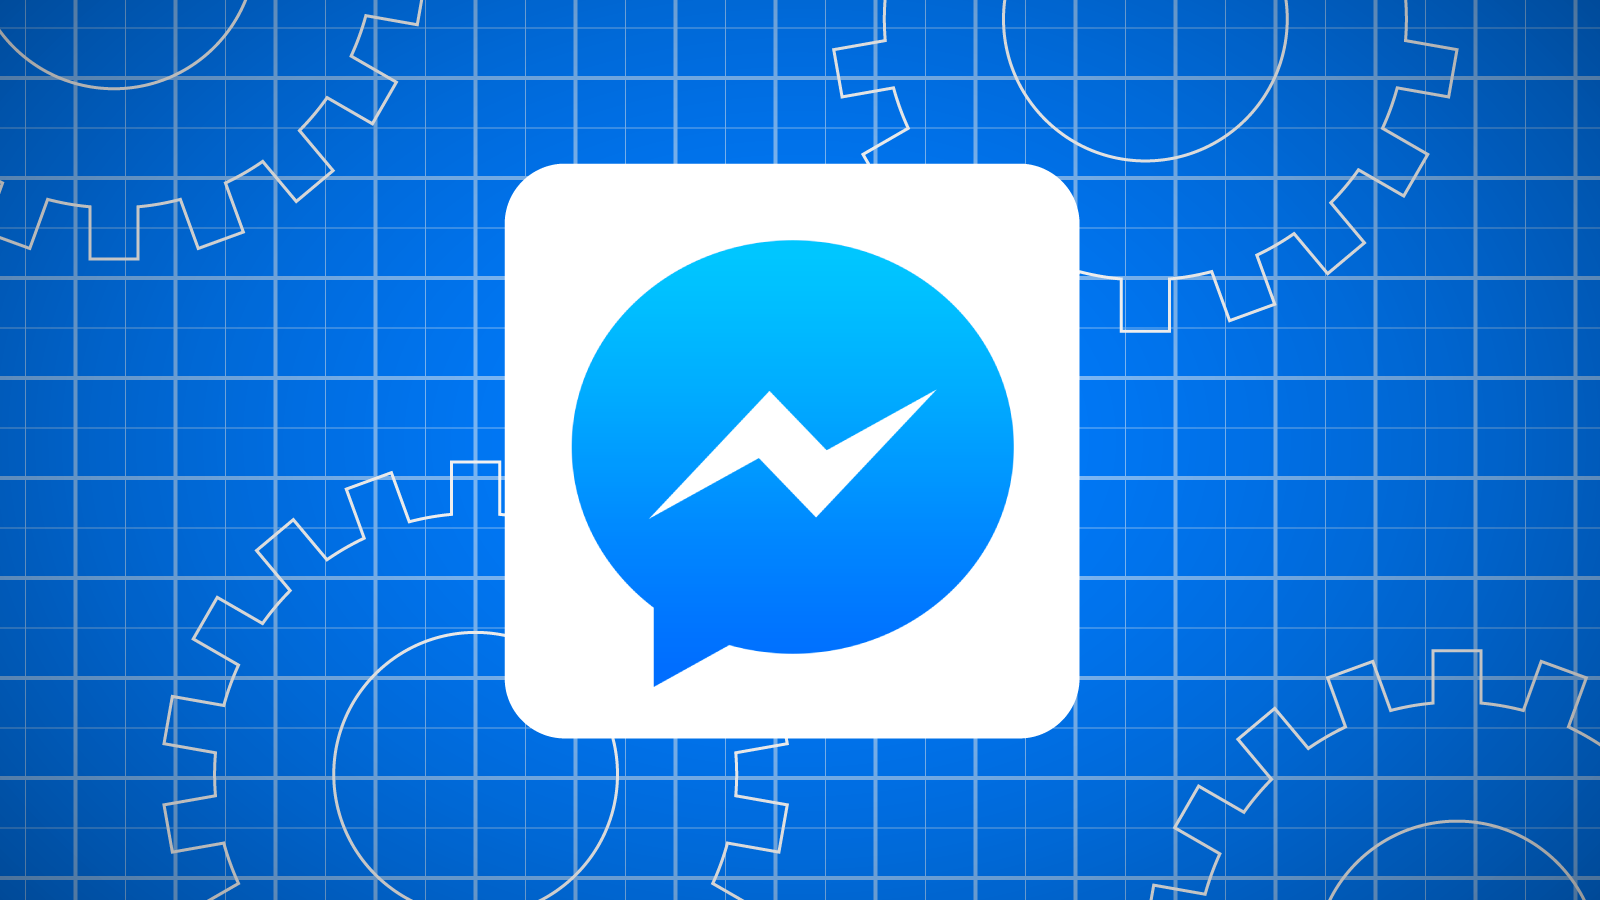 Facebook Plans To Turn Messenger Into A Platform Techcrunch